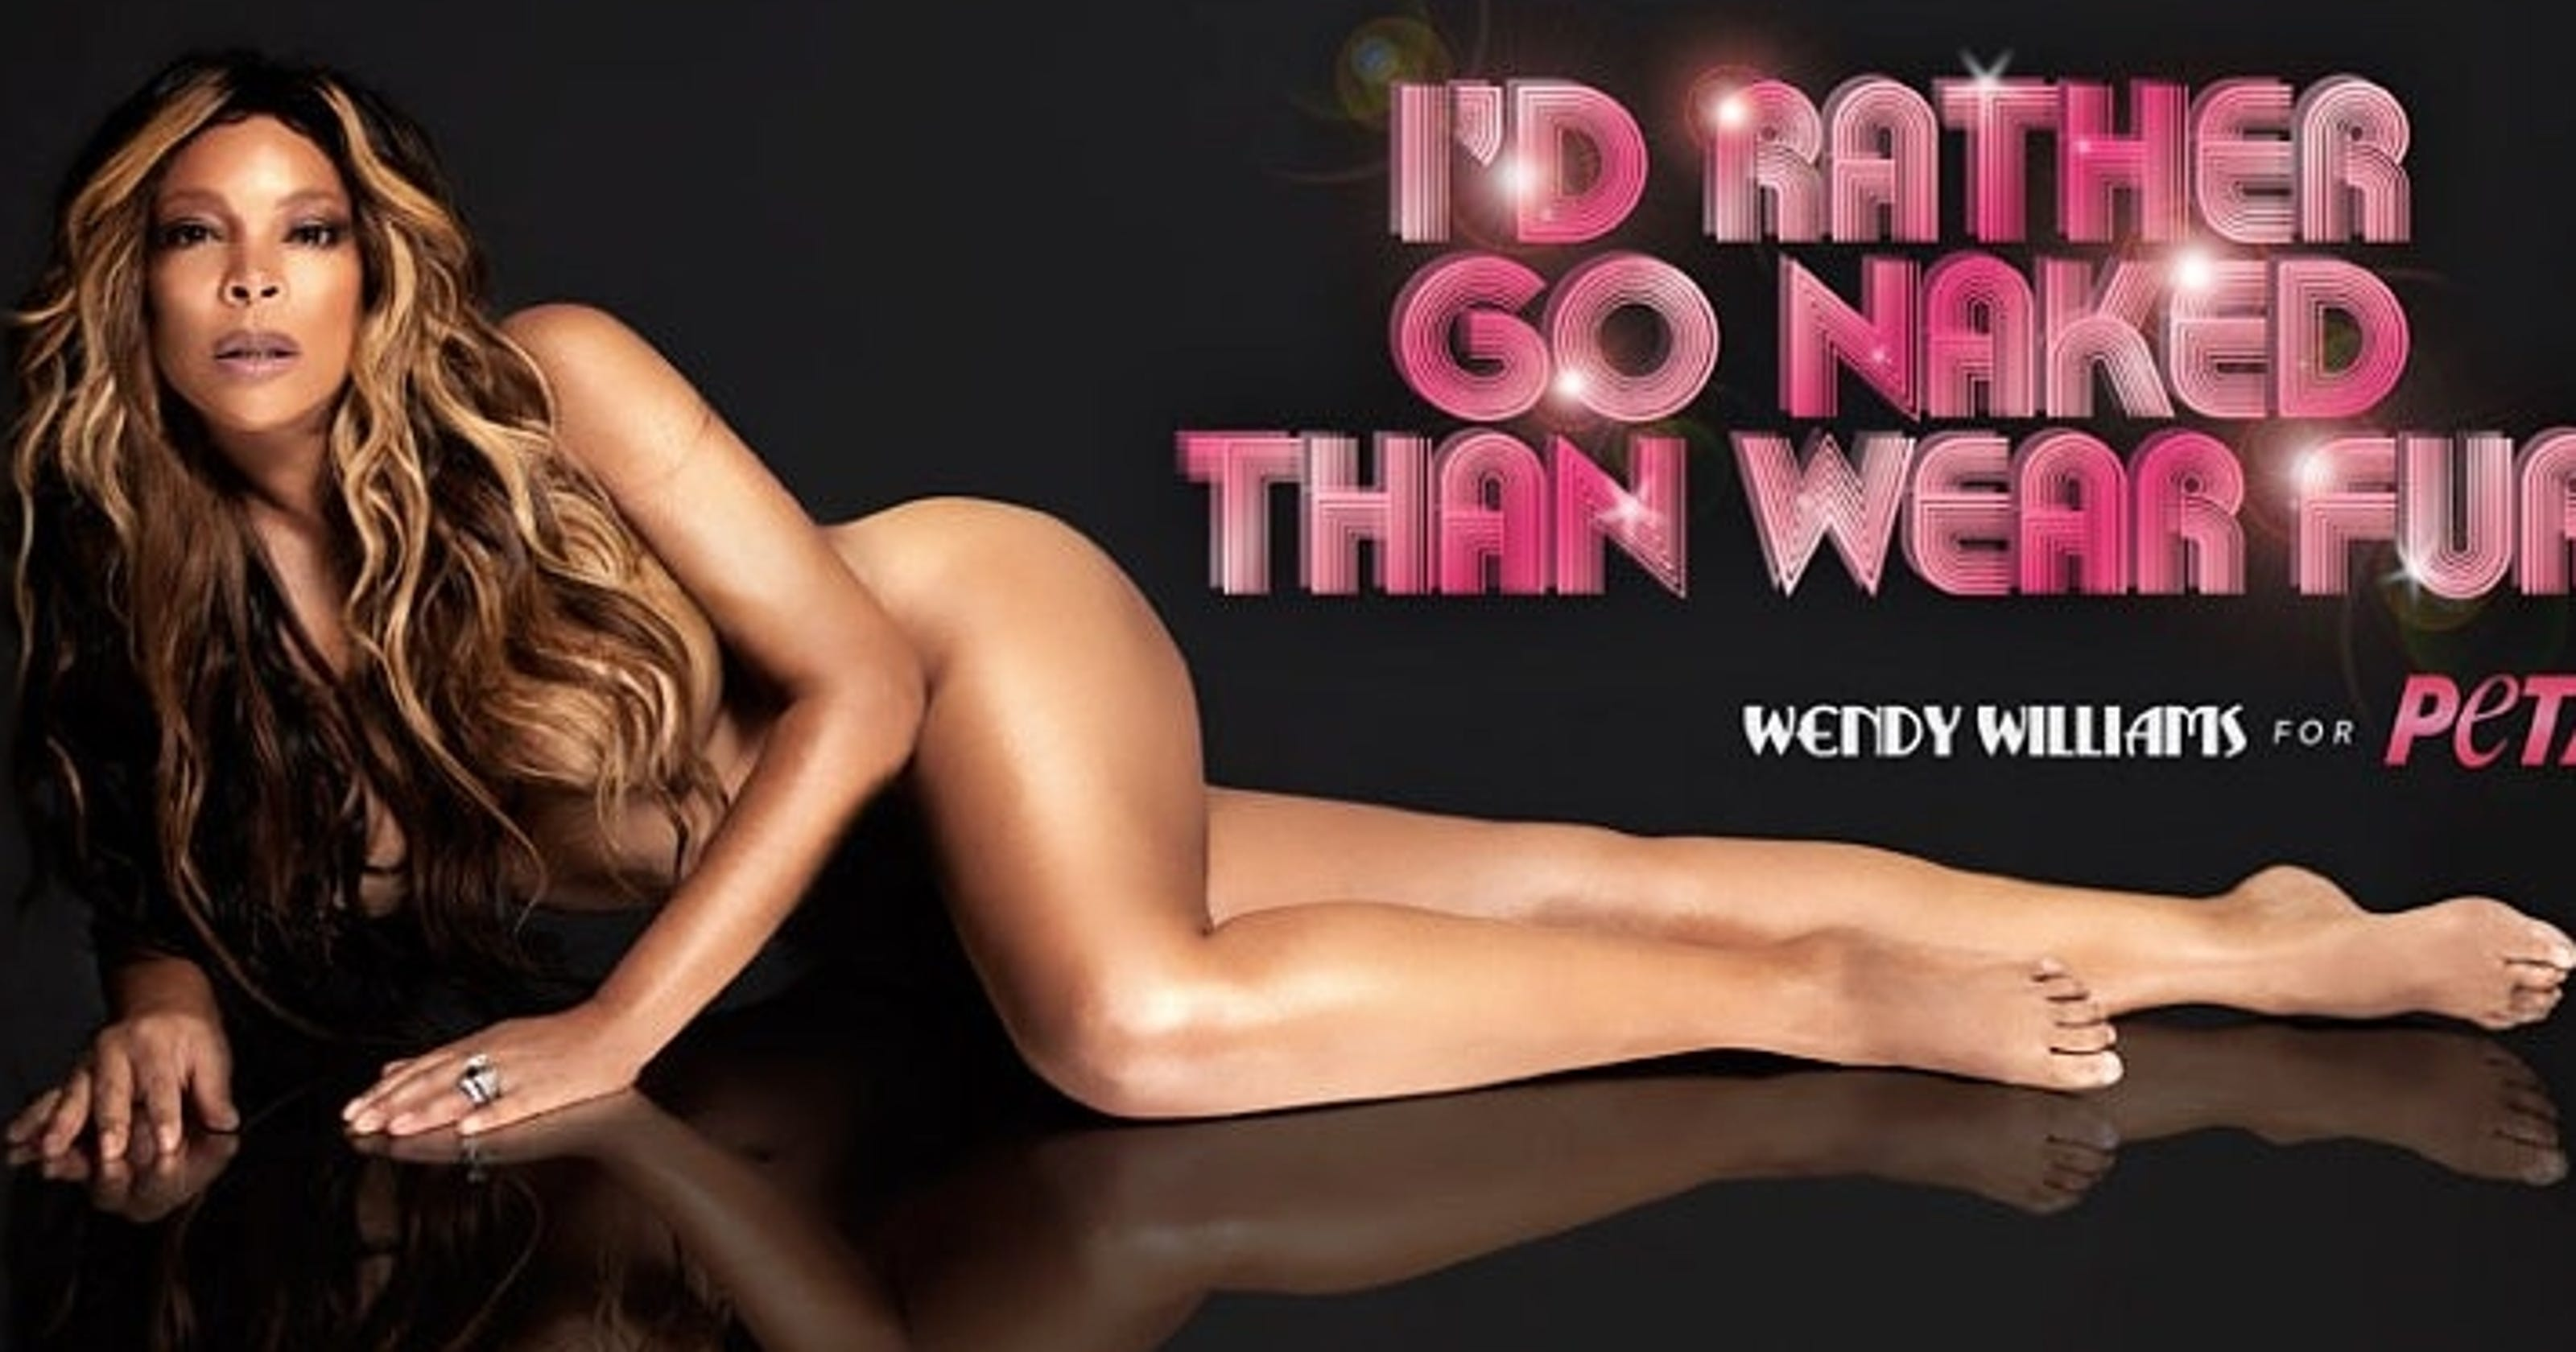 Wendy Williams Goes Naked For Peta-1615